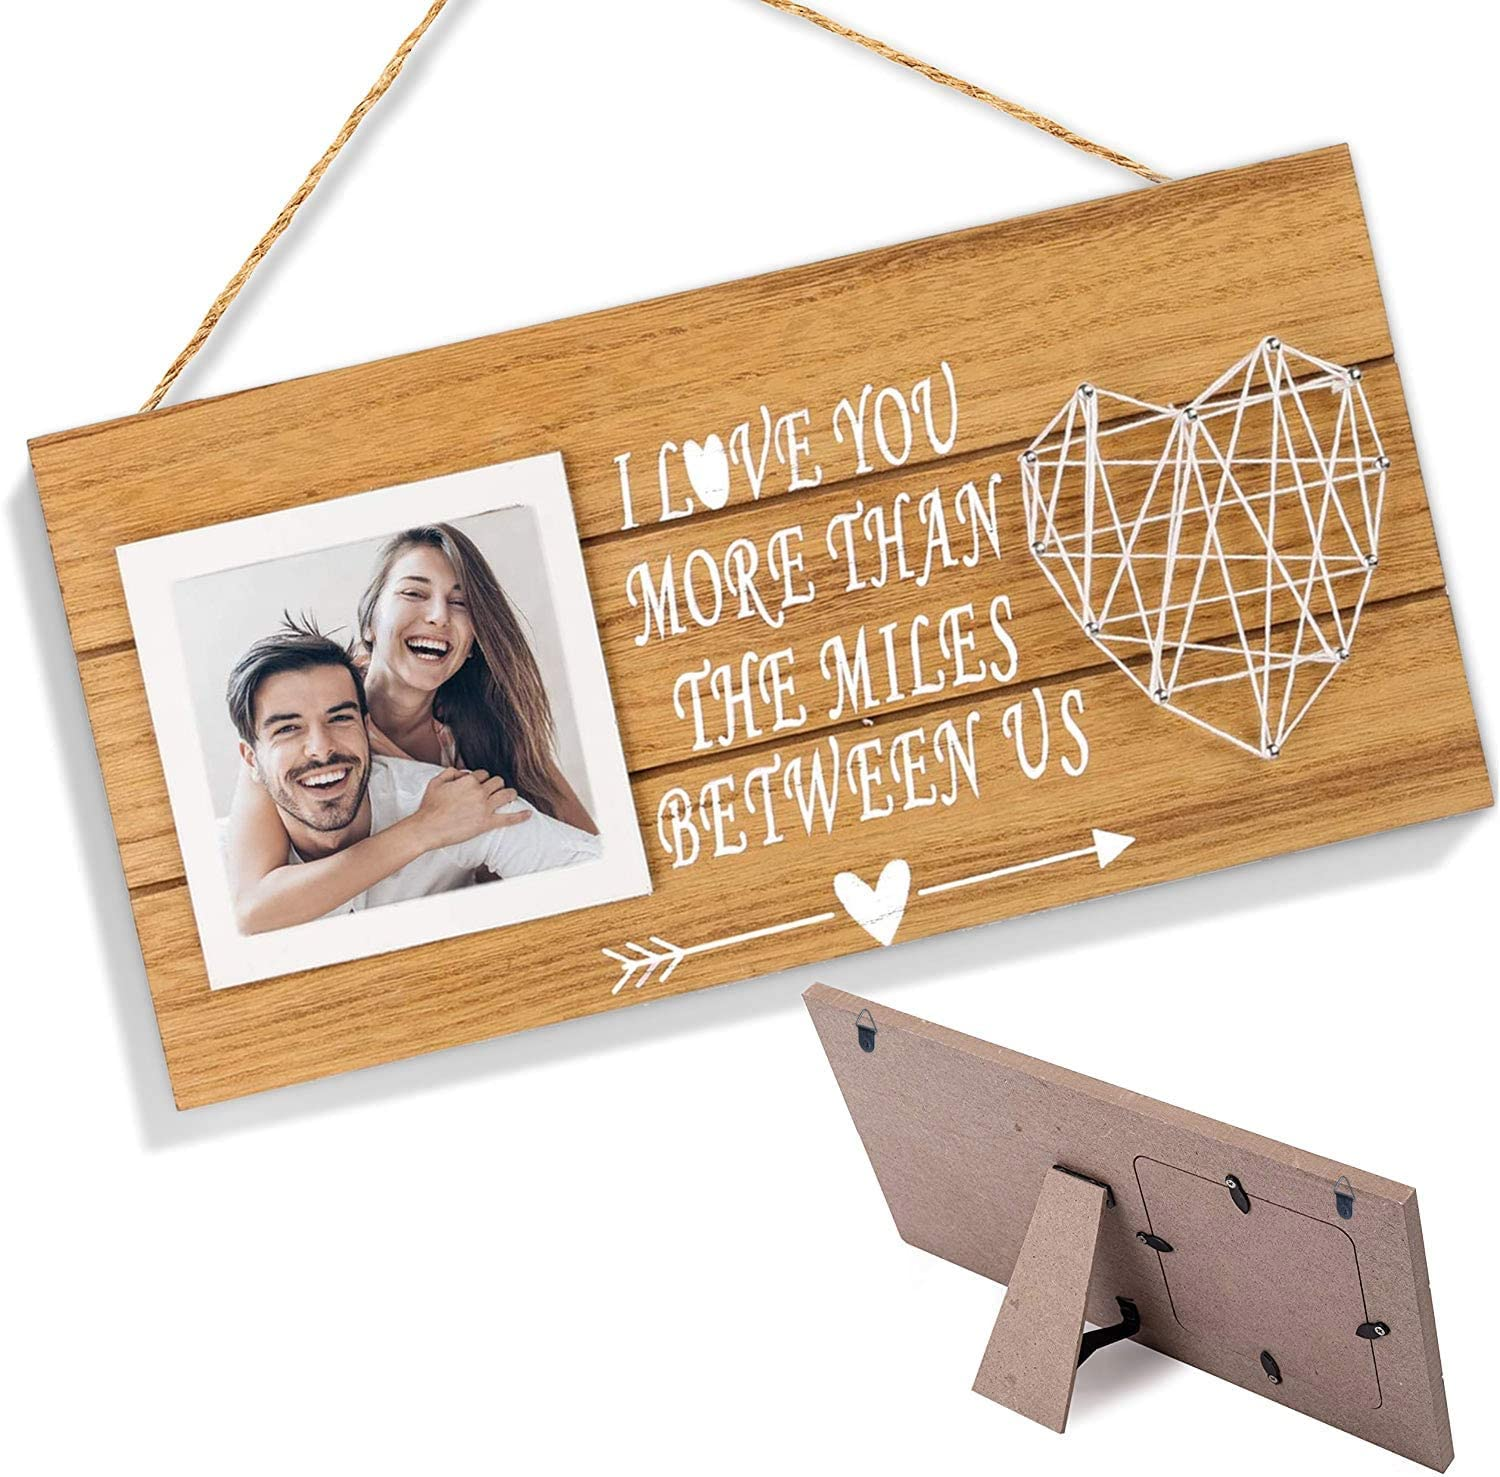 LEJHOME Boyfriend and Girlfriend Couples Romantic Picture Frame for 3x3 Photo - Hanging Photo Display with String Art Heart - Rustic Wall Sign Decor Gifts for Him Her